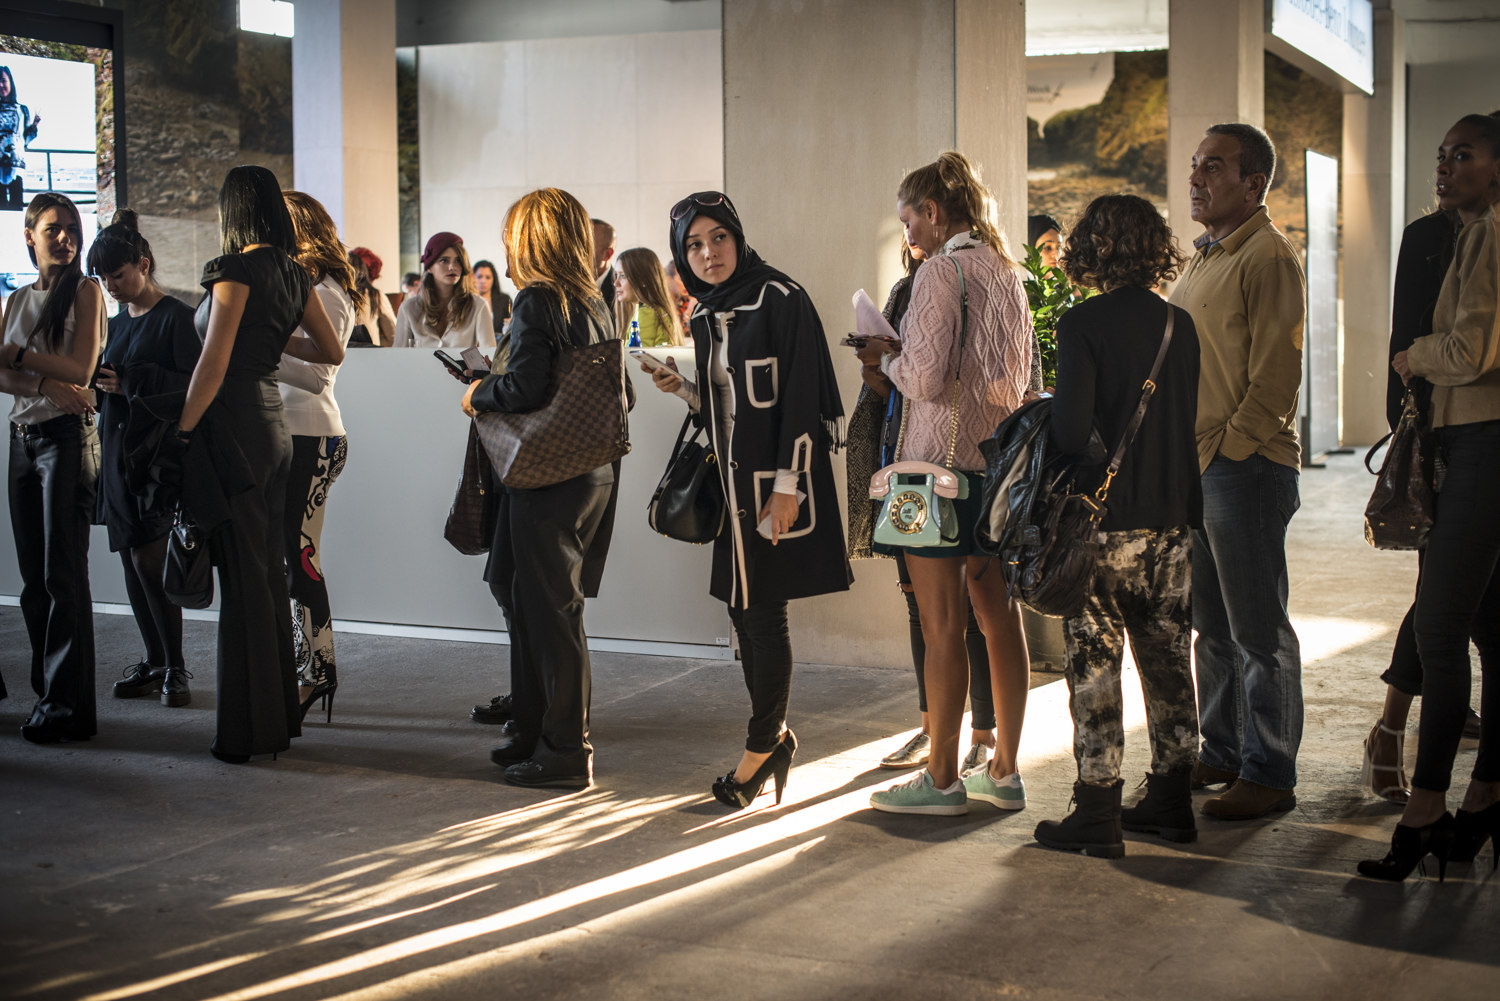 Show goers before the DB Berdan show at S/S 2015 Istanbul Fashion Week.